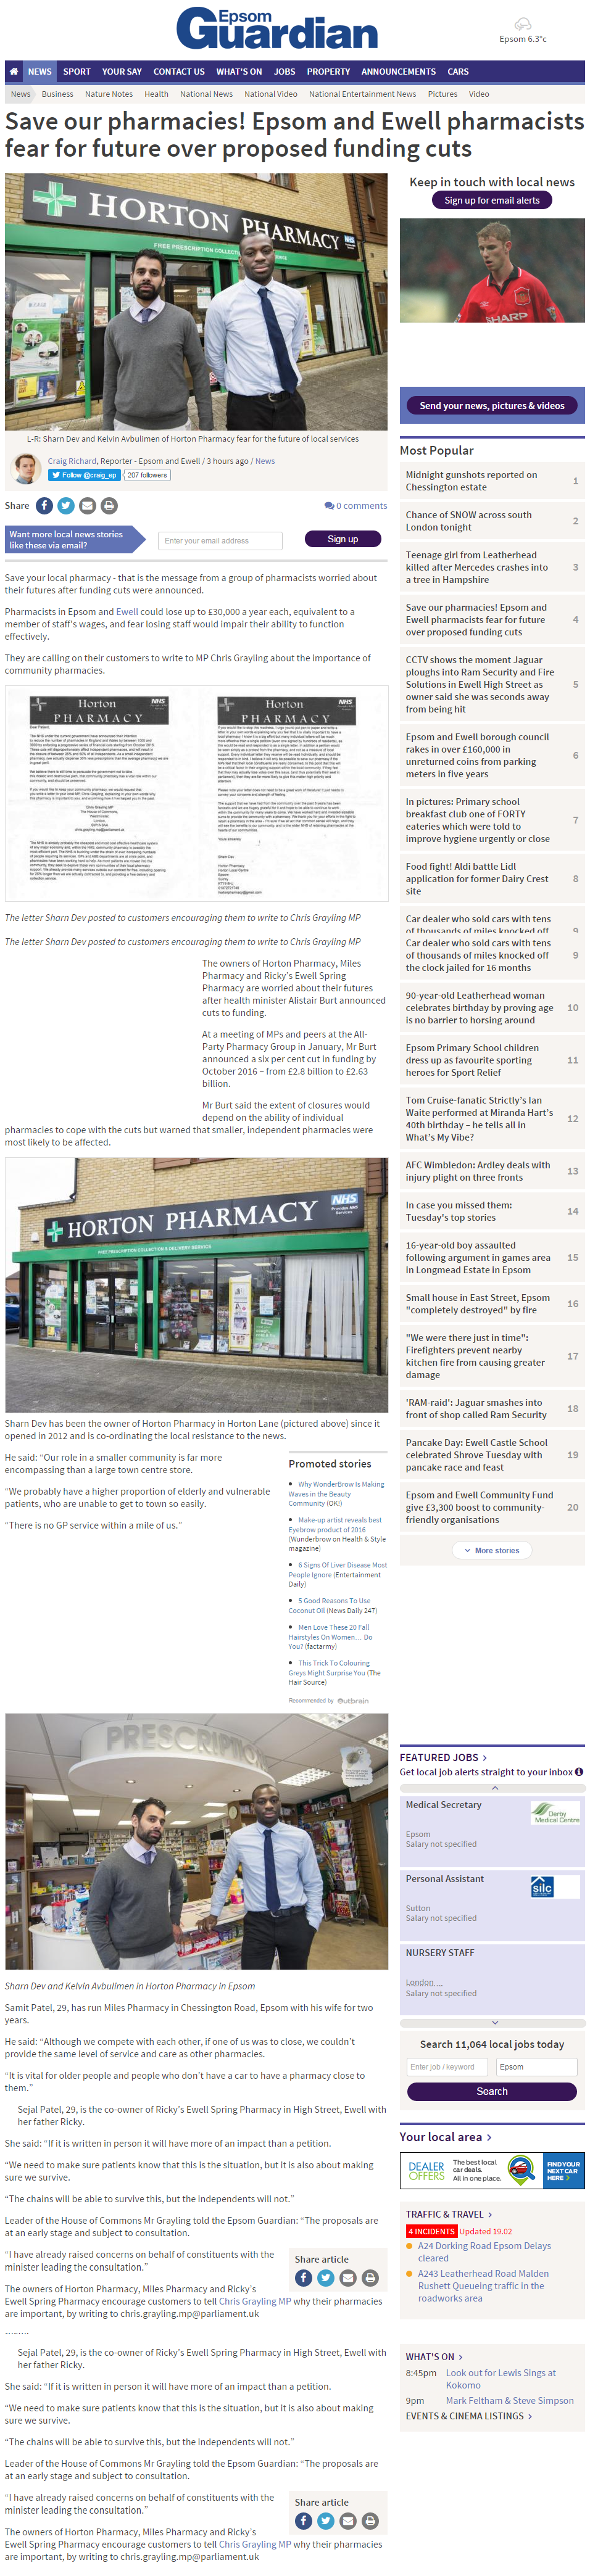 2016 02 17 - Epsom Guardian - Save Our Pharmacies